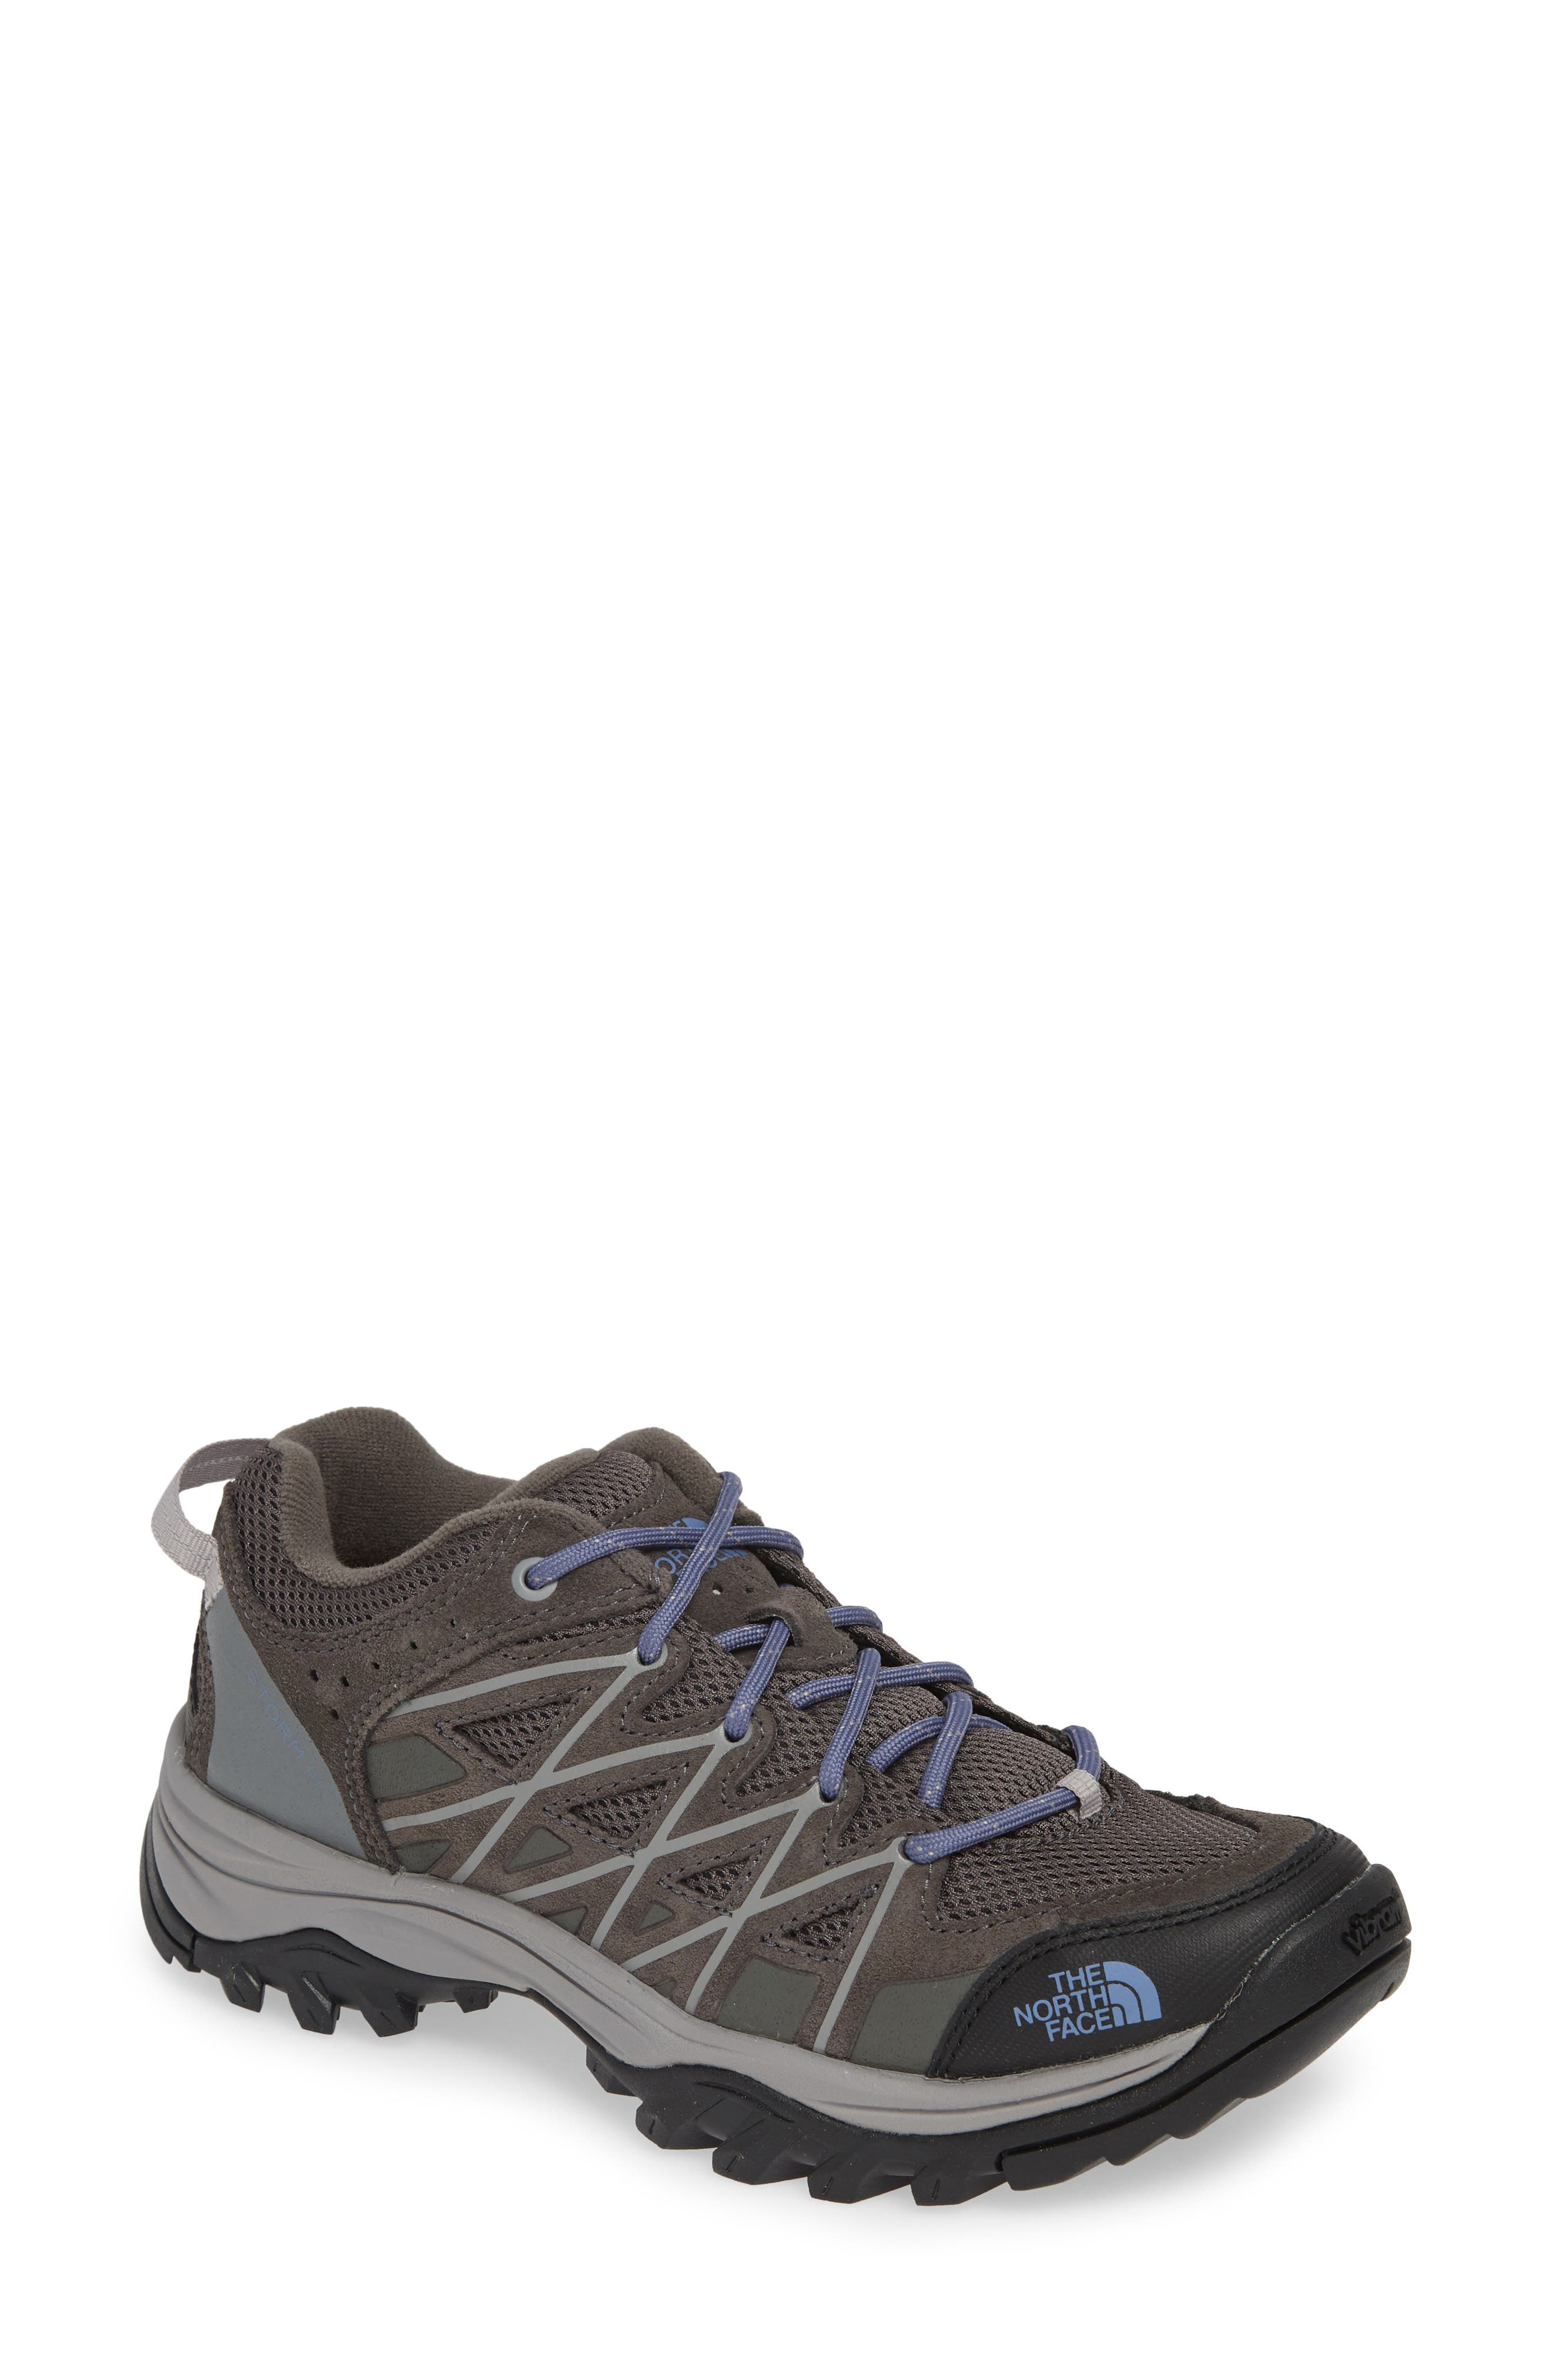 THE NORTH FACE Storm III Waterproof Hiking Sneaker, Main, color, DARK GULL GREY/ MARLIN BLUE